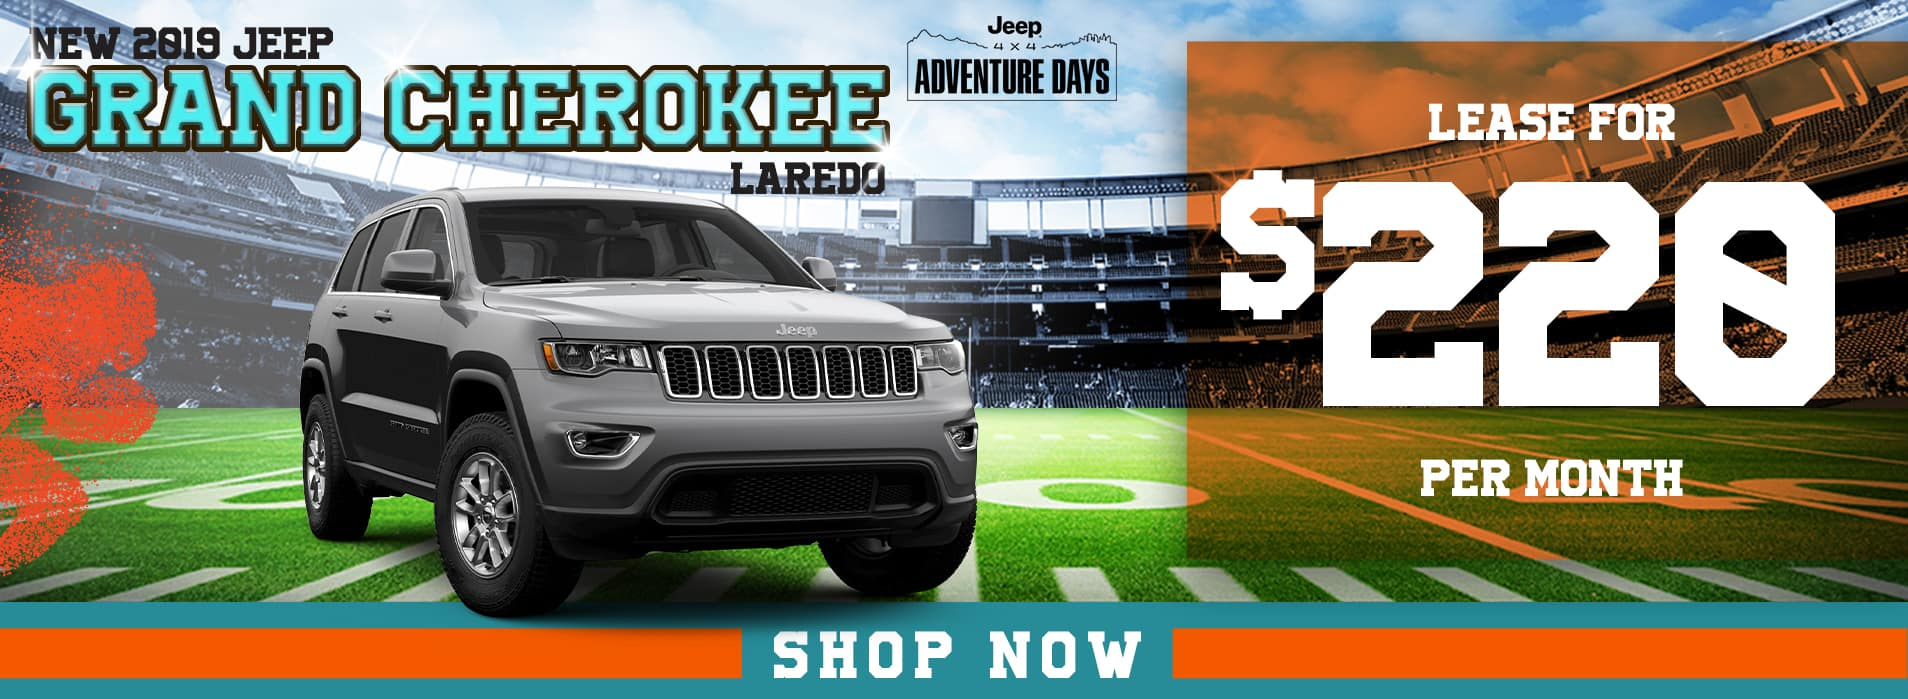 Grand Cherokee | Lease for $220 per mo